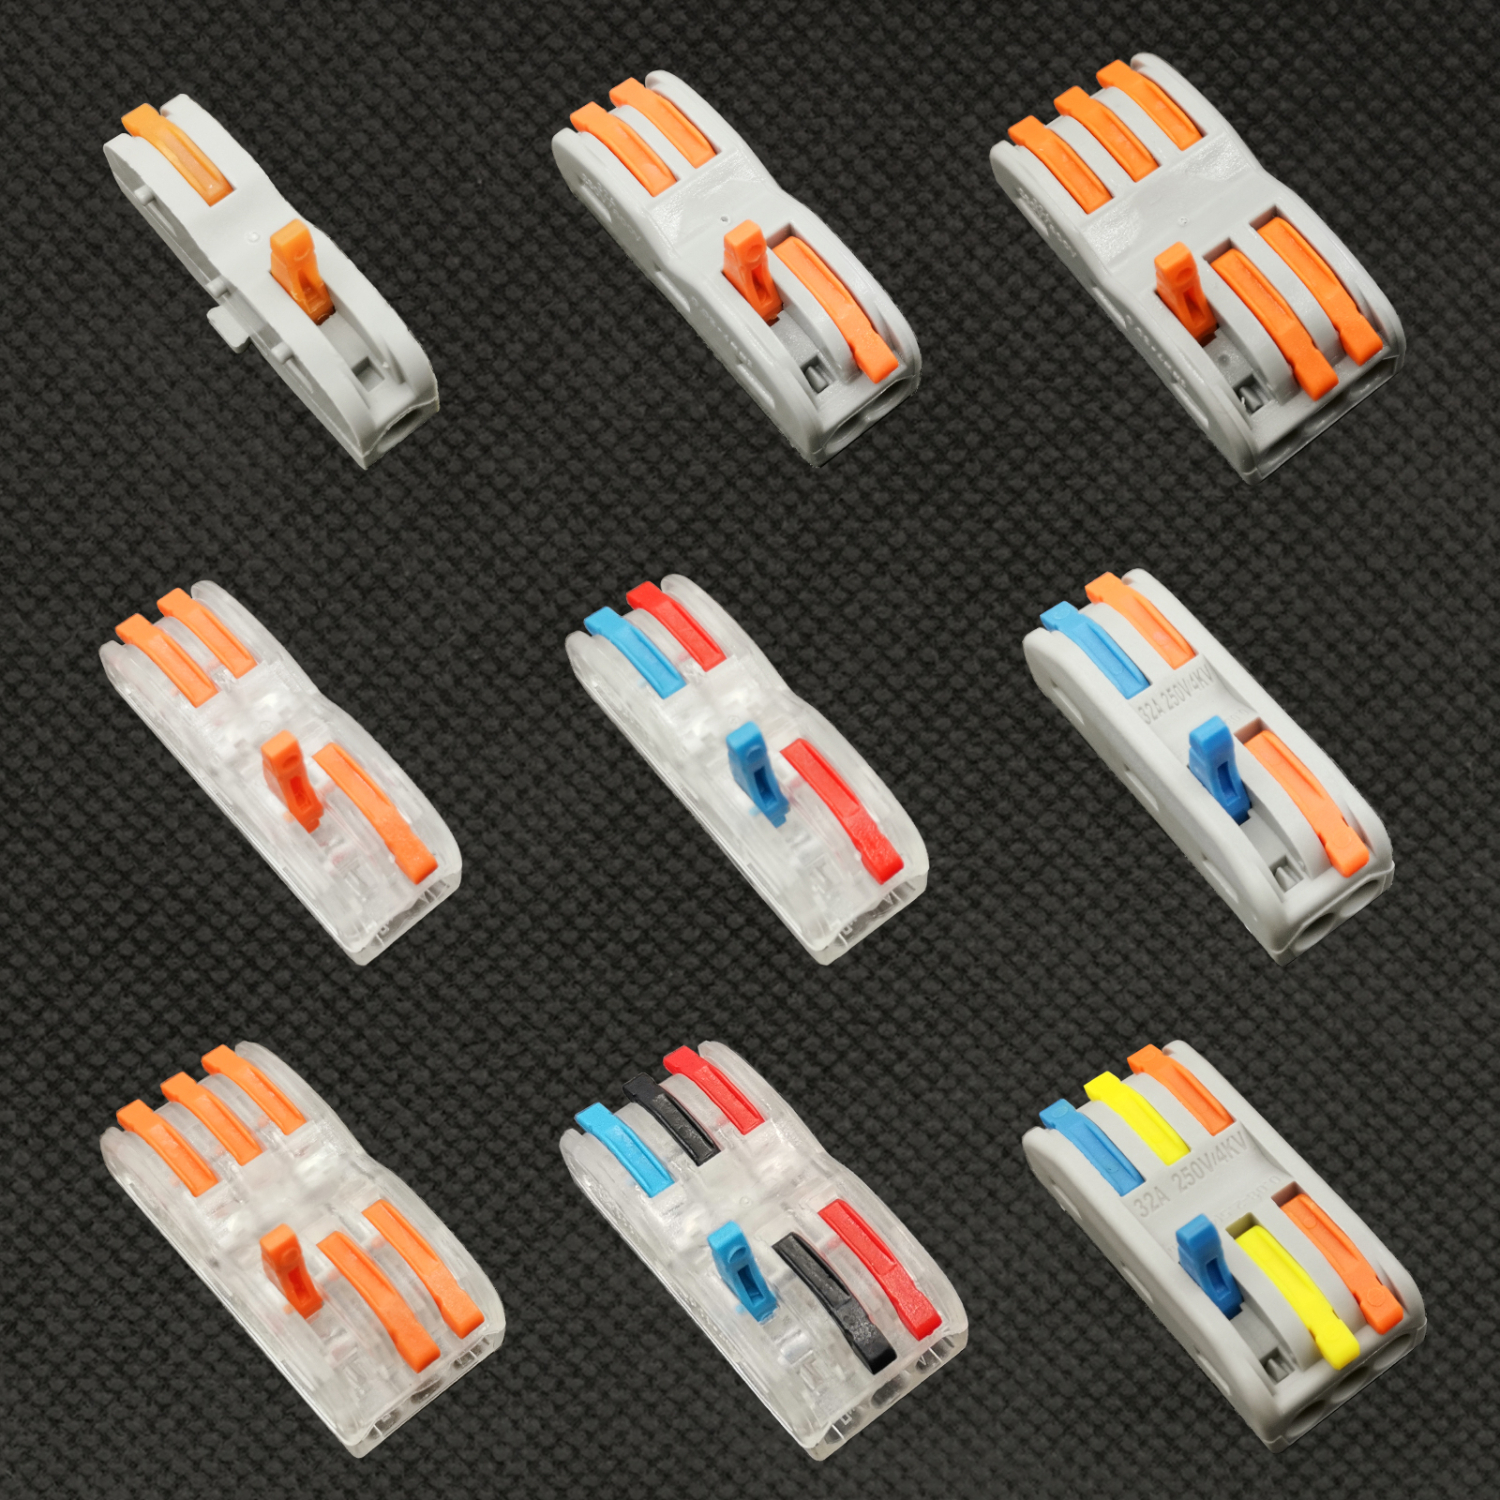 25-100Pcs Wire Connector Terminal Mini Fast Connectors,Universal Compact Cable Connector SPL-1 SPL-2 SPL-3 Terminal Block